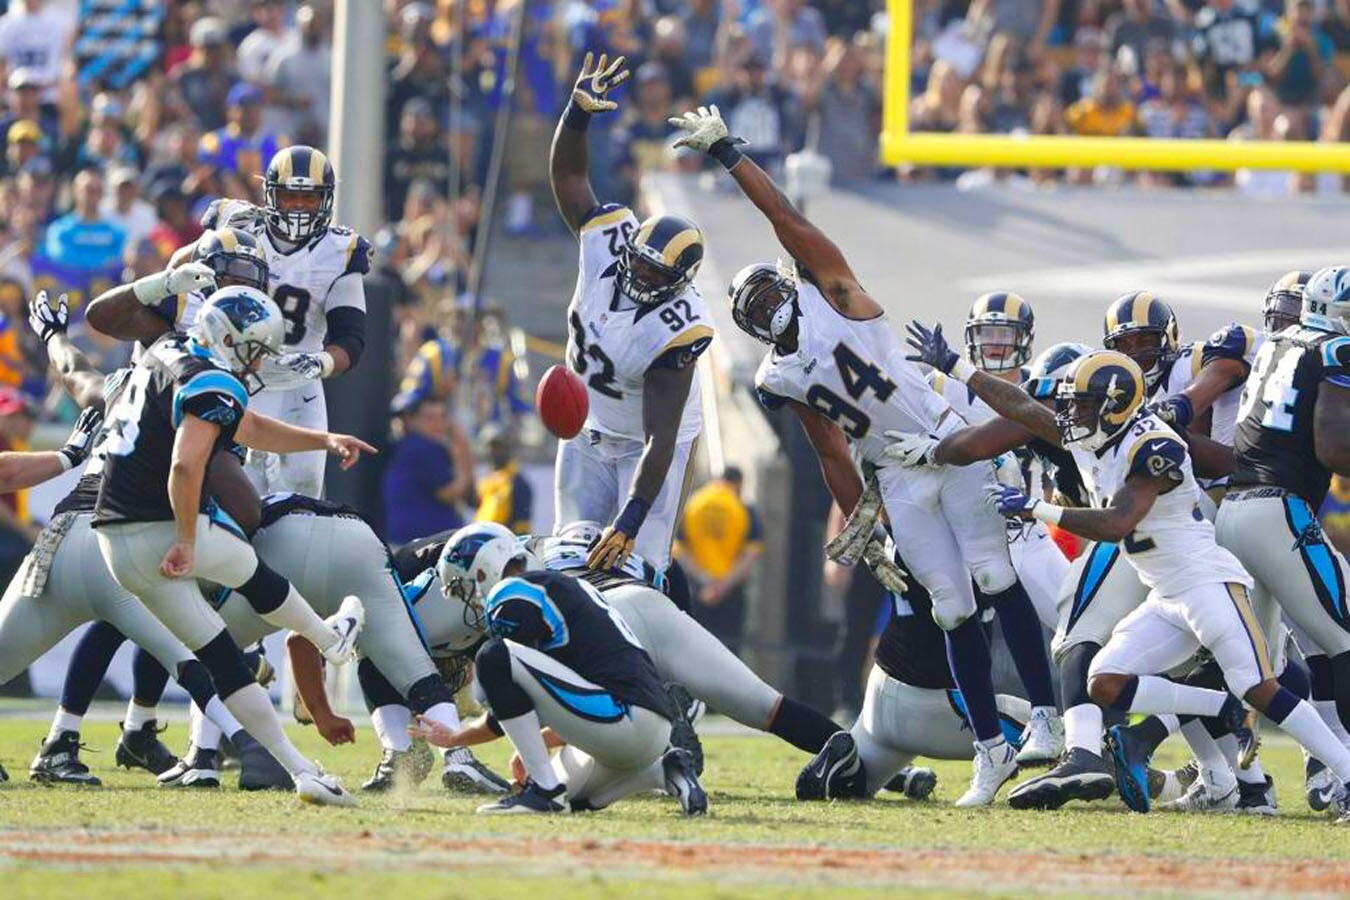 NFL: Panthers 13-10 Rams